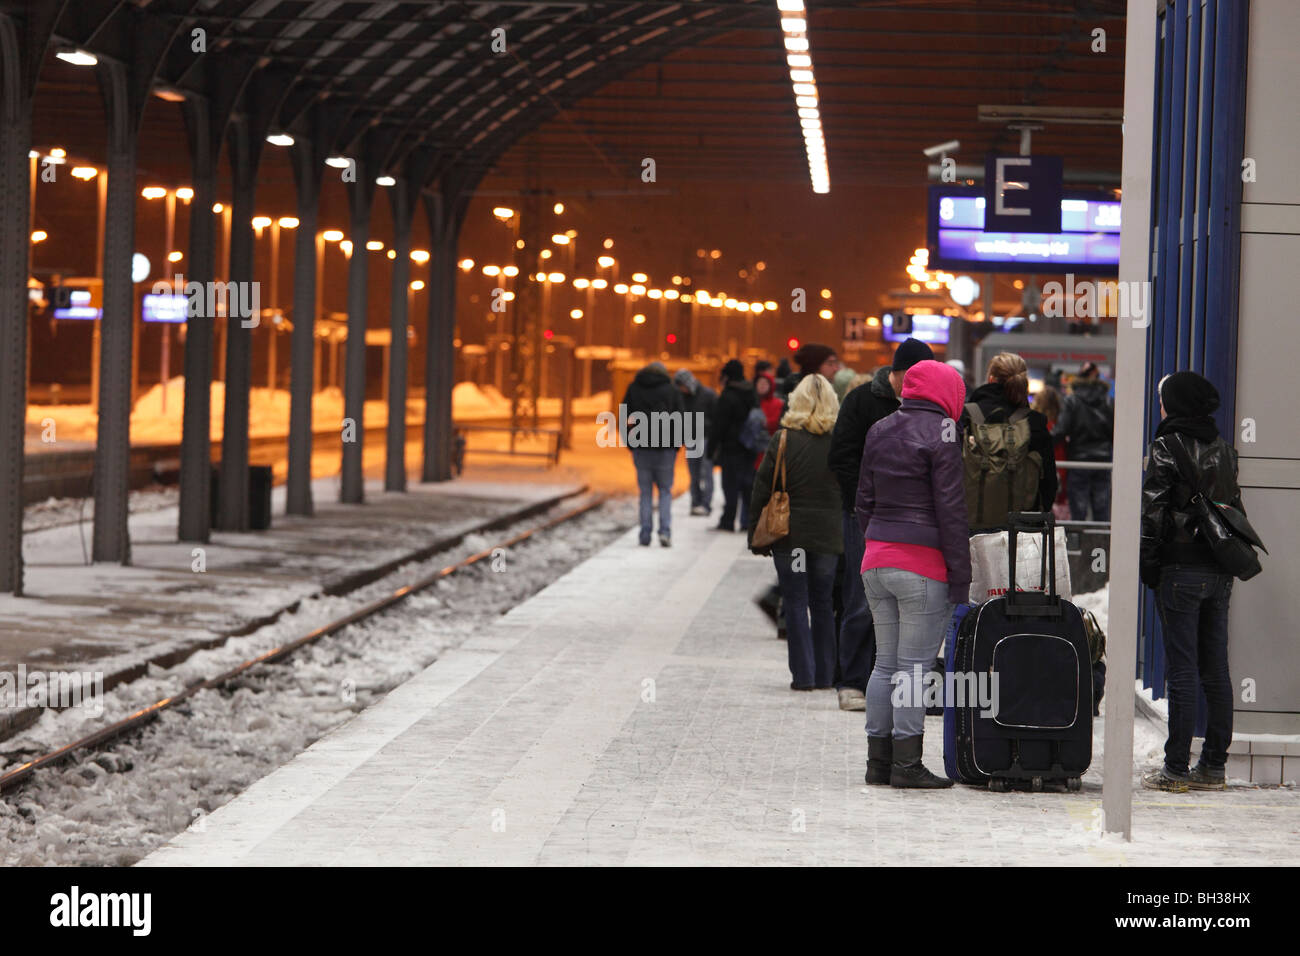 travelers on train platform waiting in winter for the delayed train - Stock Image